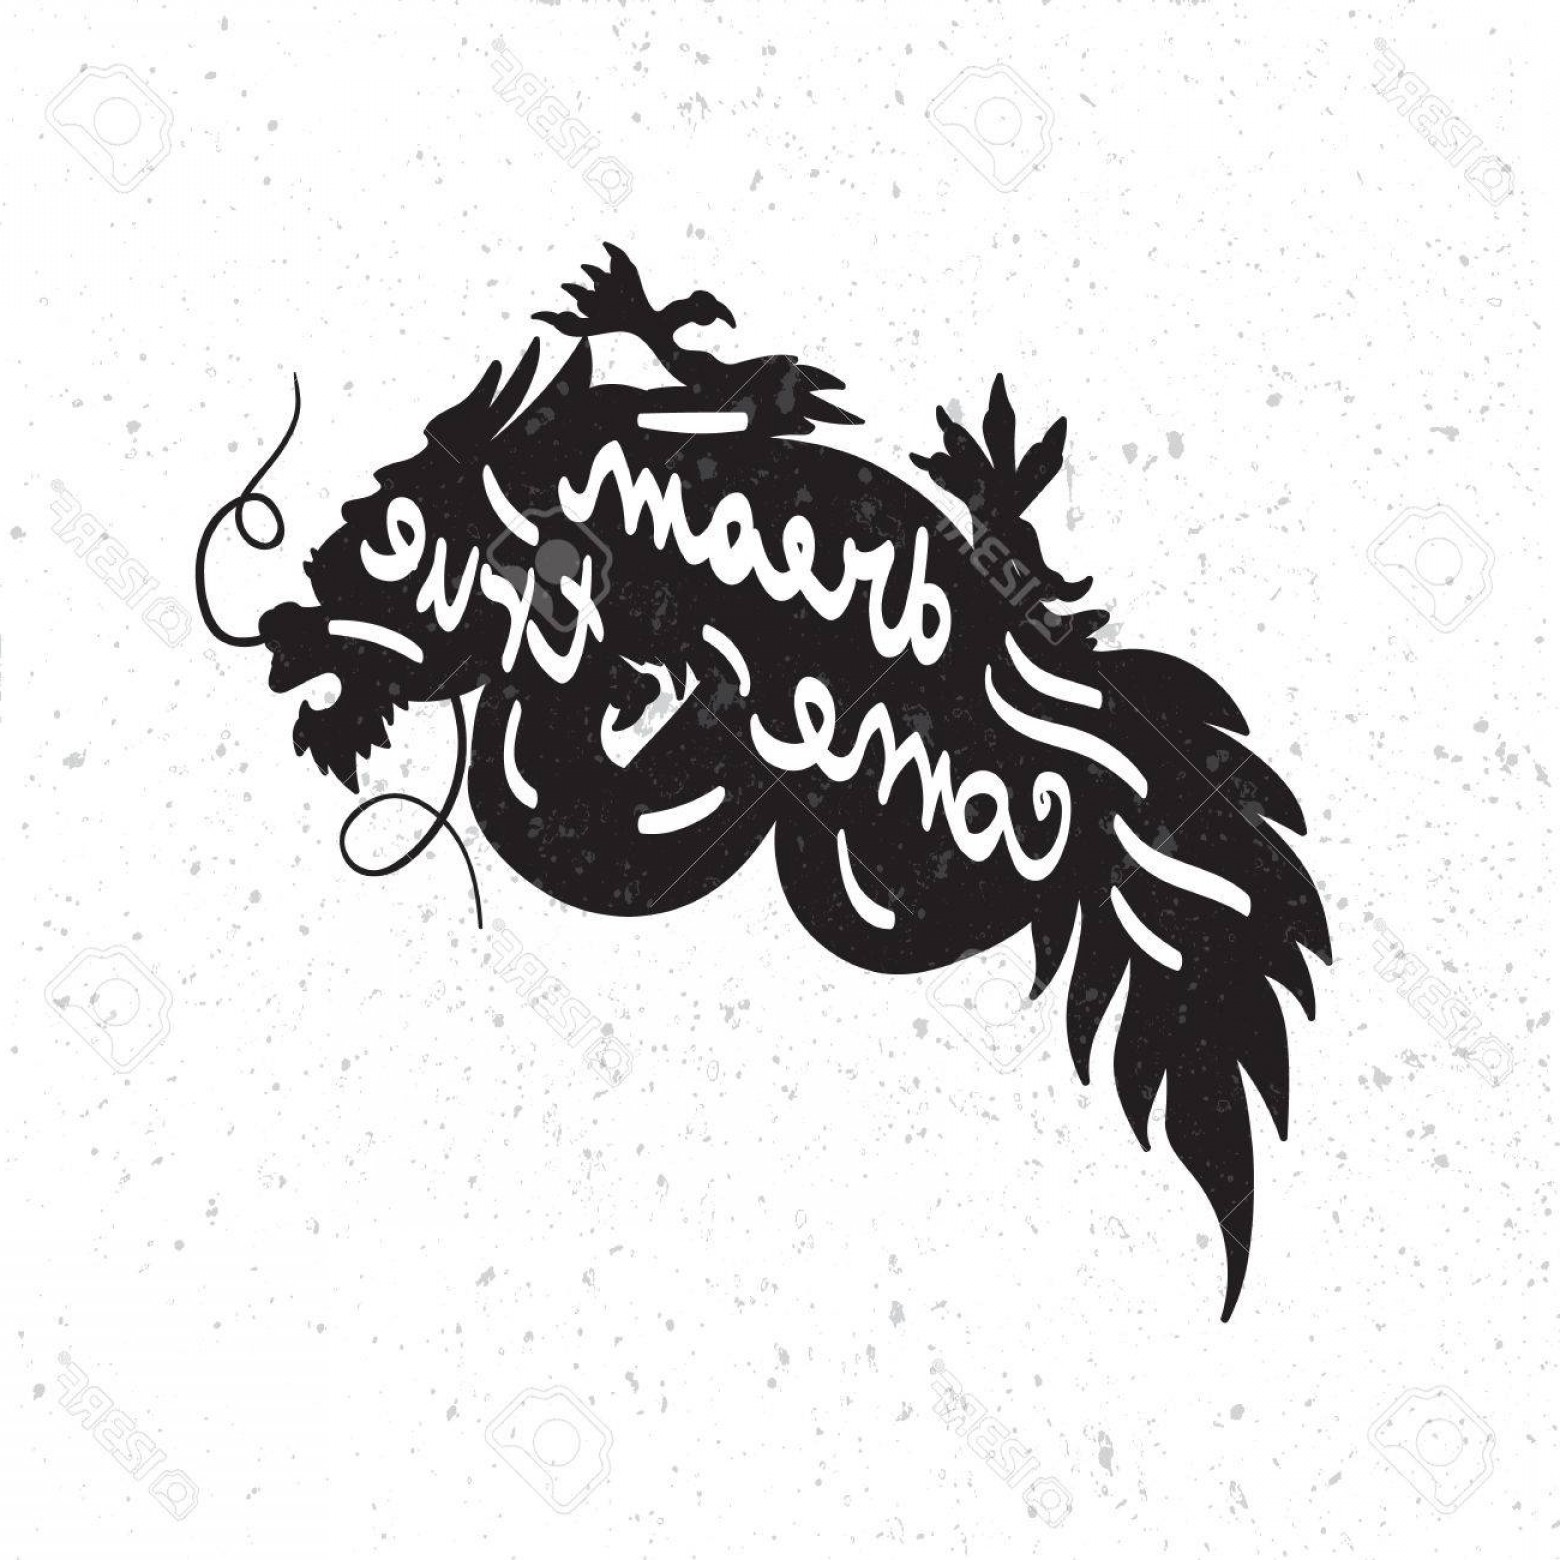 Oriental Dragon Vector: Photostock Vector Isolated Chinese Dragon Oriental Feng Shui In Symbol Of The Yin Yang Dream Come True Lettering Vecto